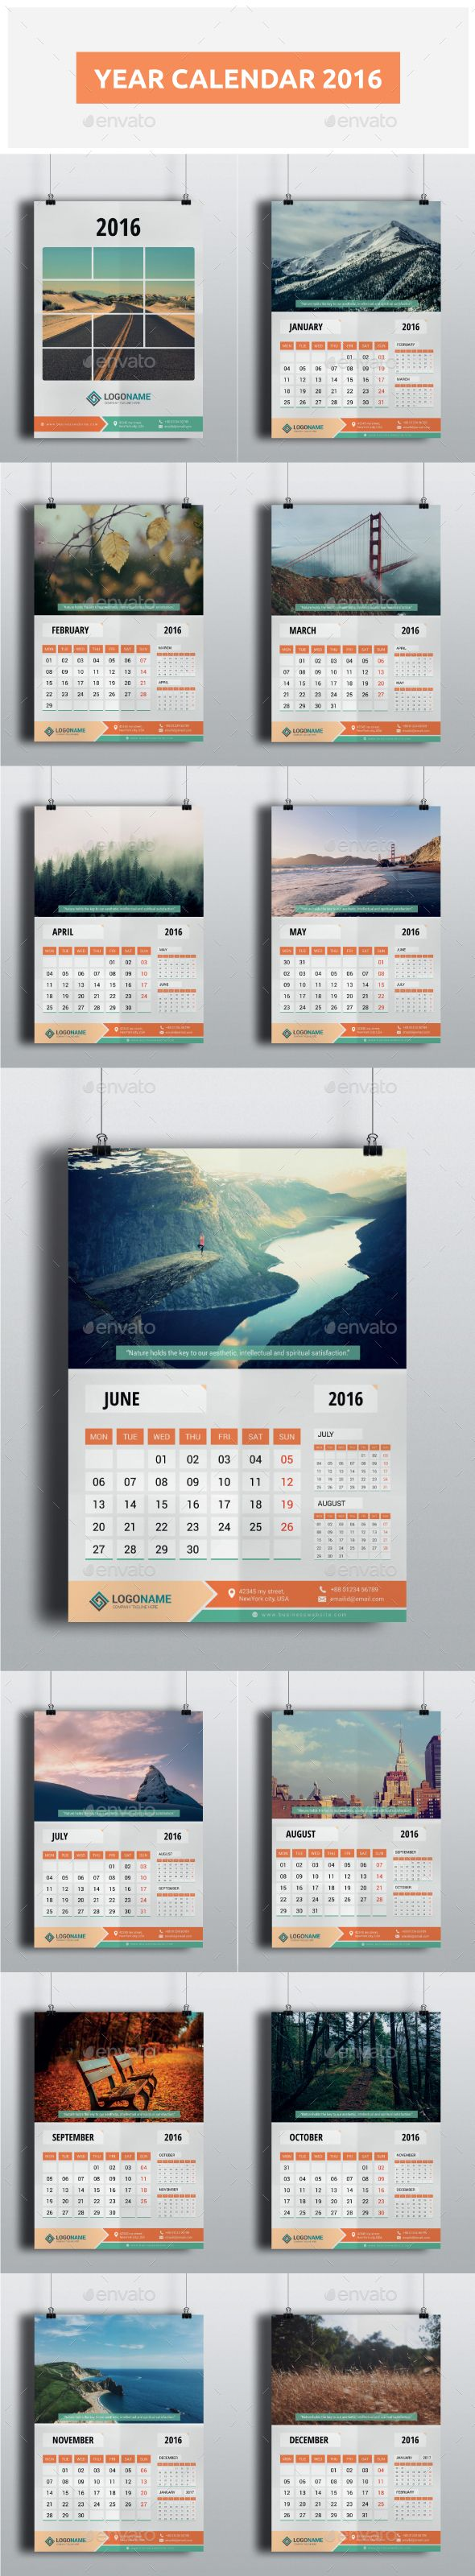 Year Calendar 2016 - Calendars Stationery